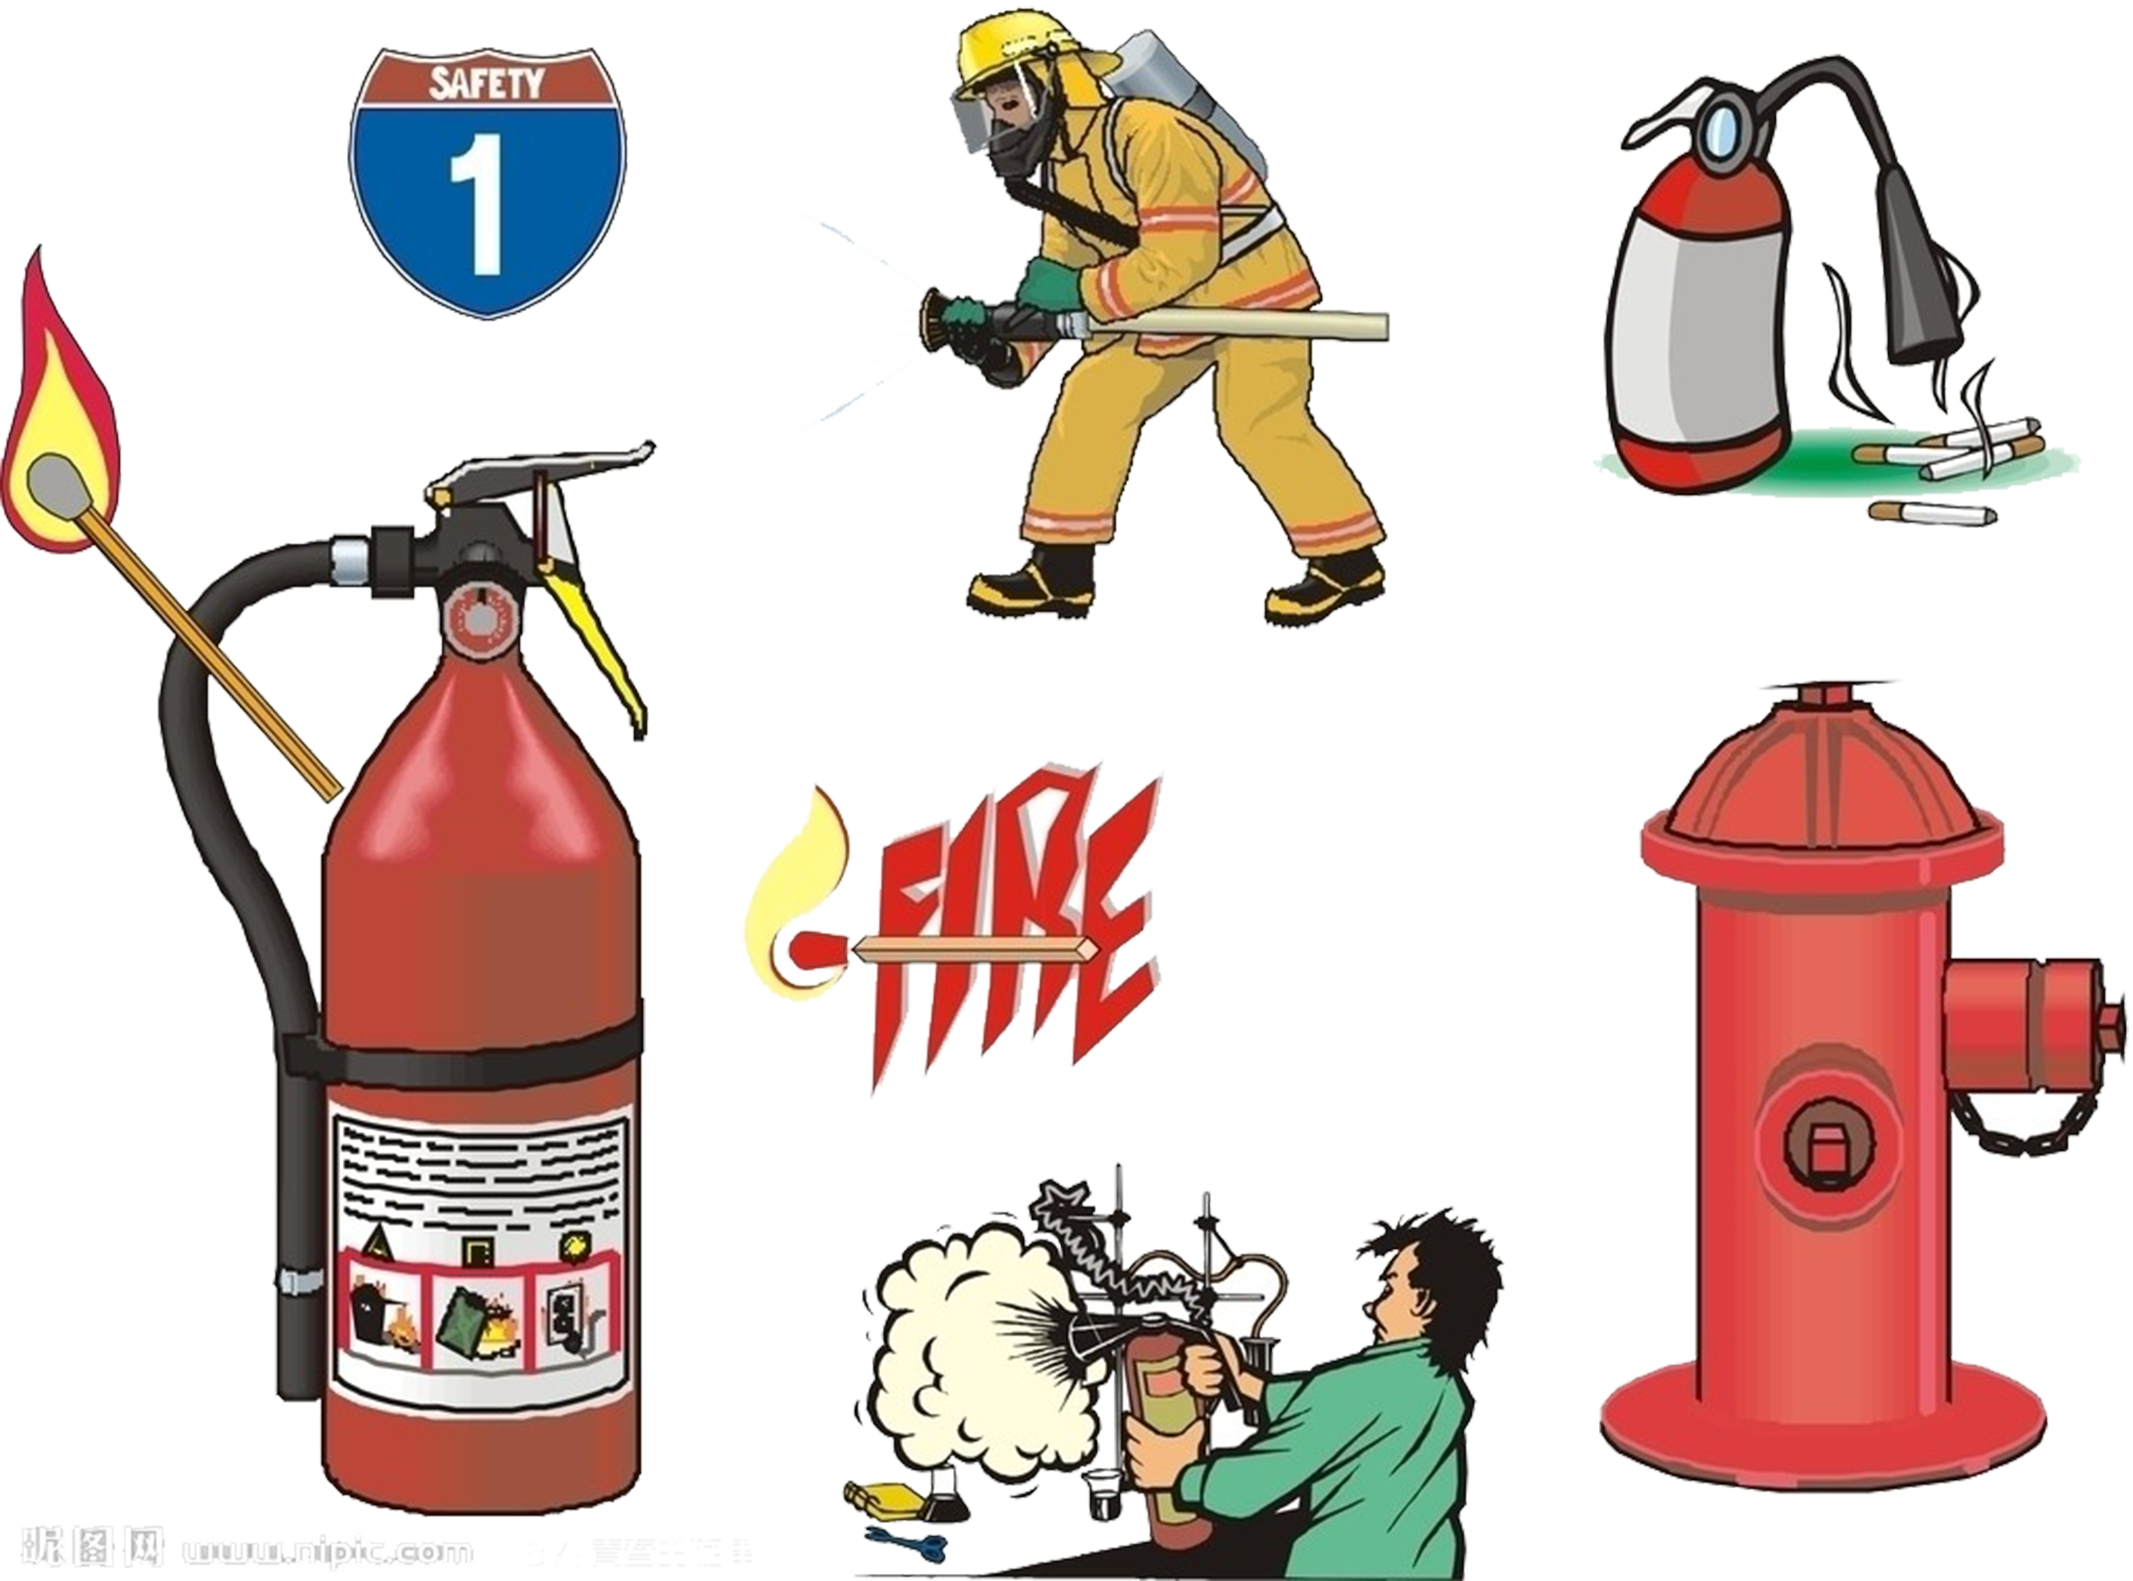 Fireman clipart extinguisher. Firefighter firefighting fire alarm